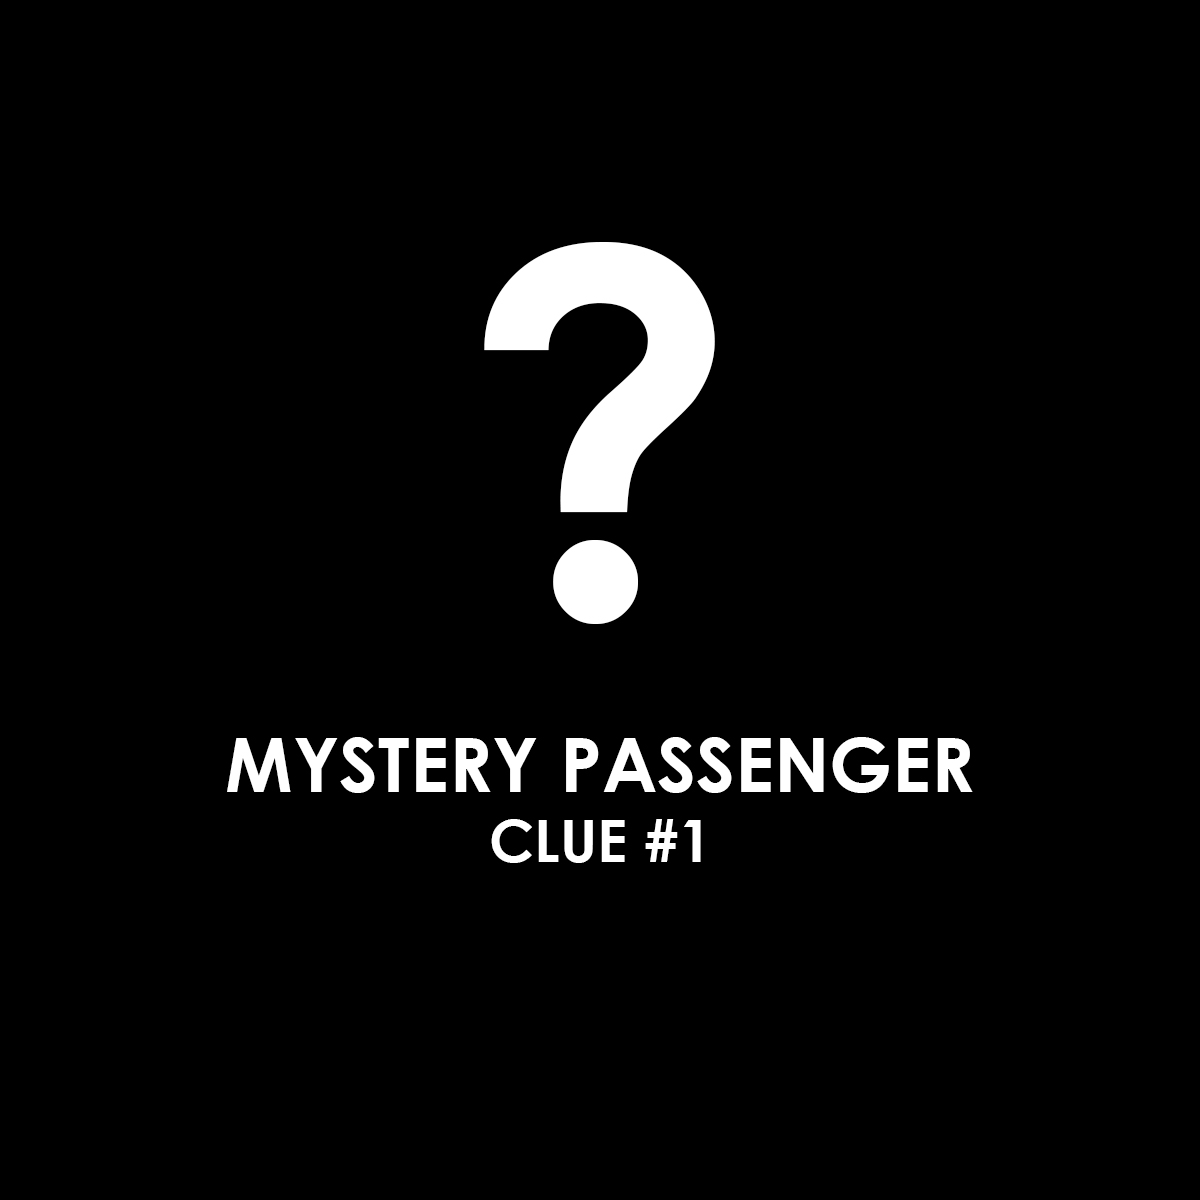 ARTIST NEEDED TO DESIGN MYSTERY PASSENGER CHARACTERS - Clue #1: If you go back 300 million years you'll find something with a resemblance quite clear.